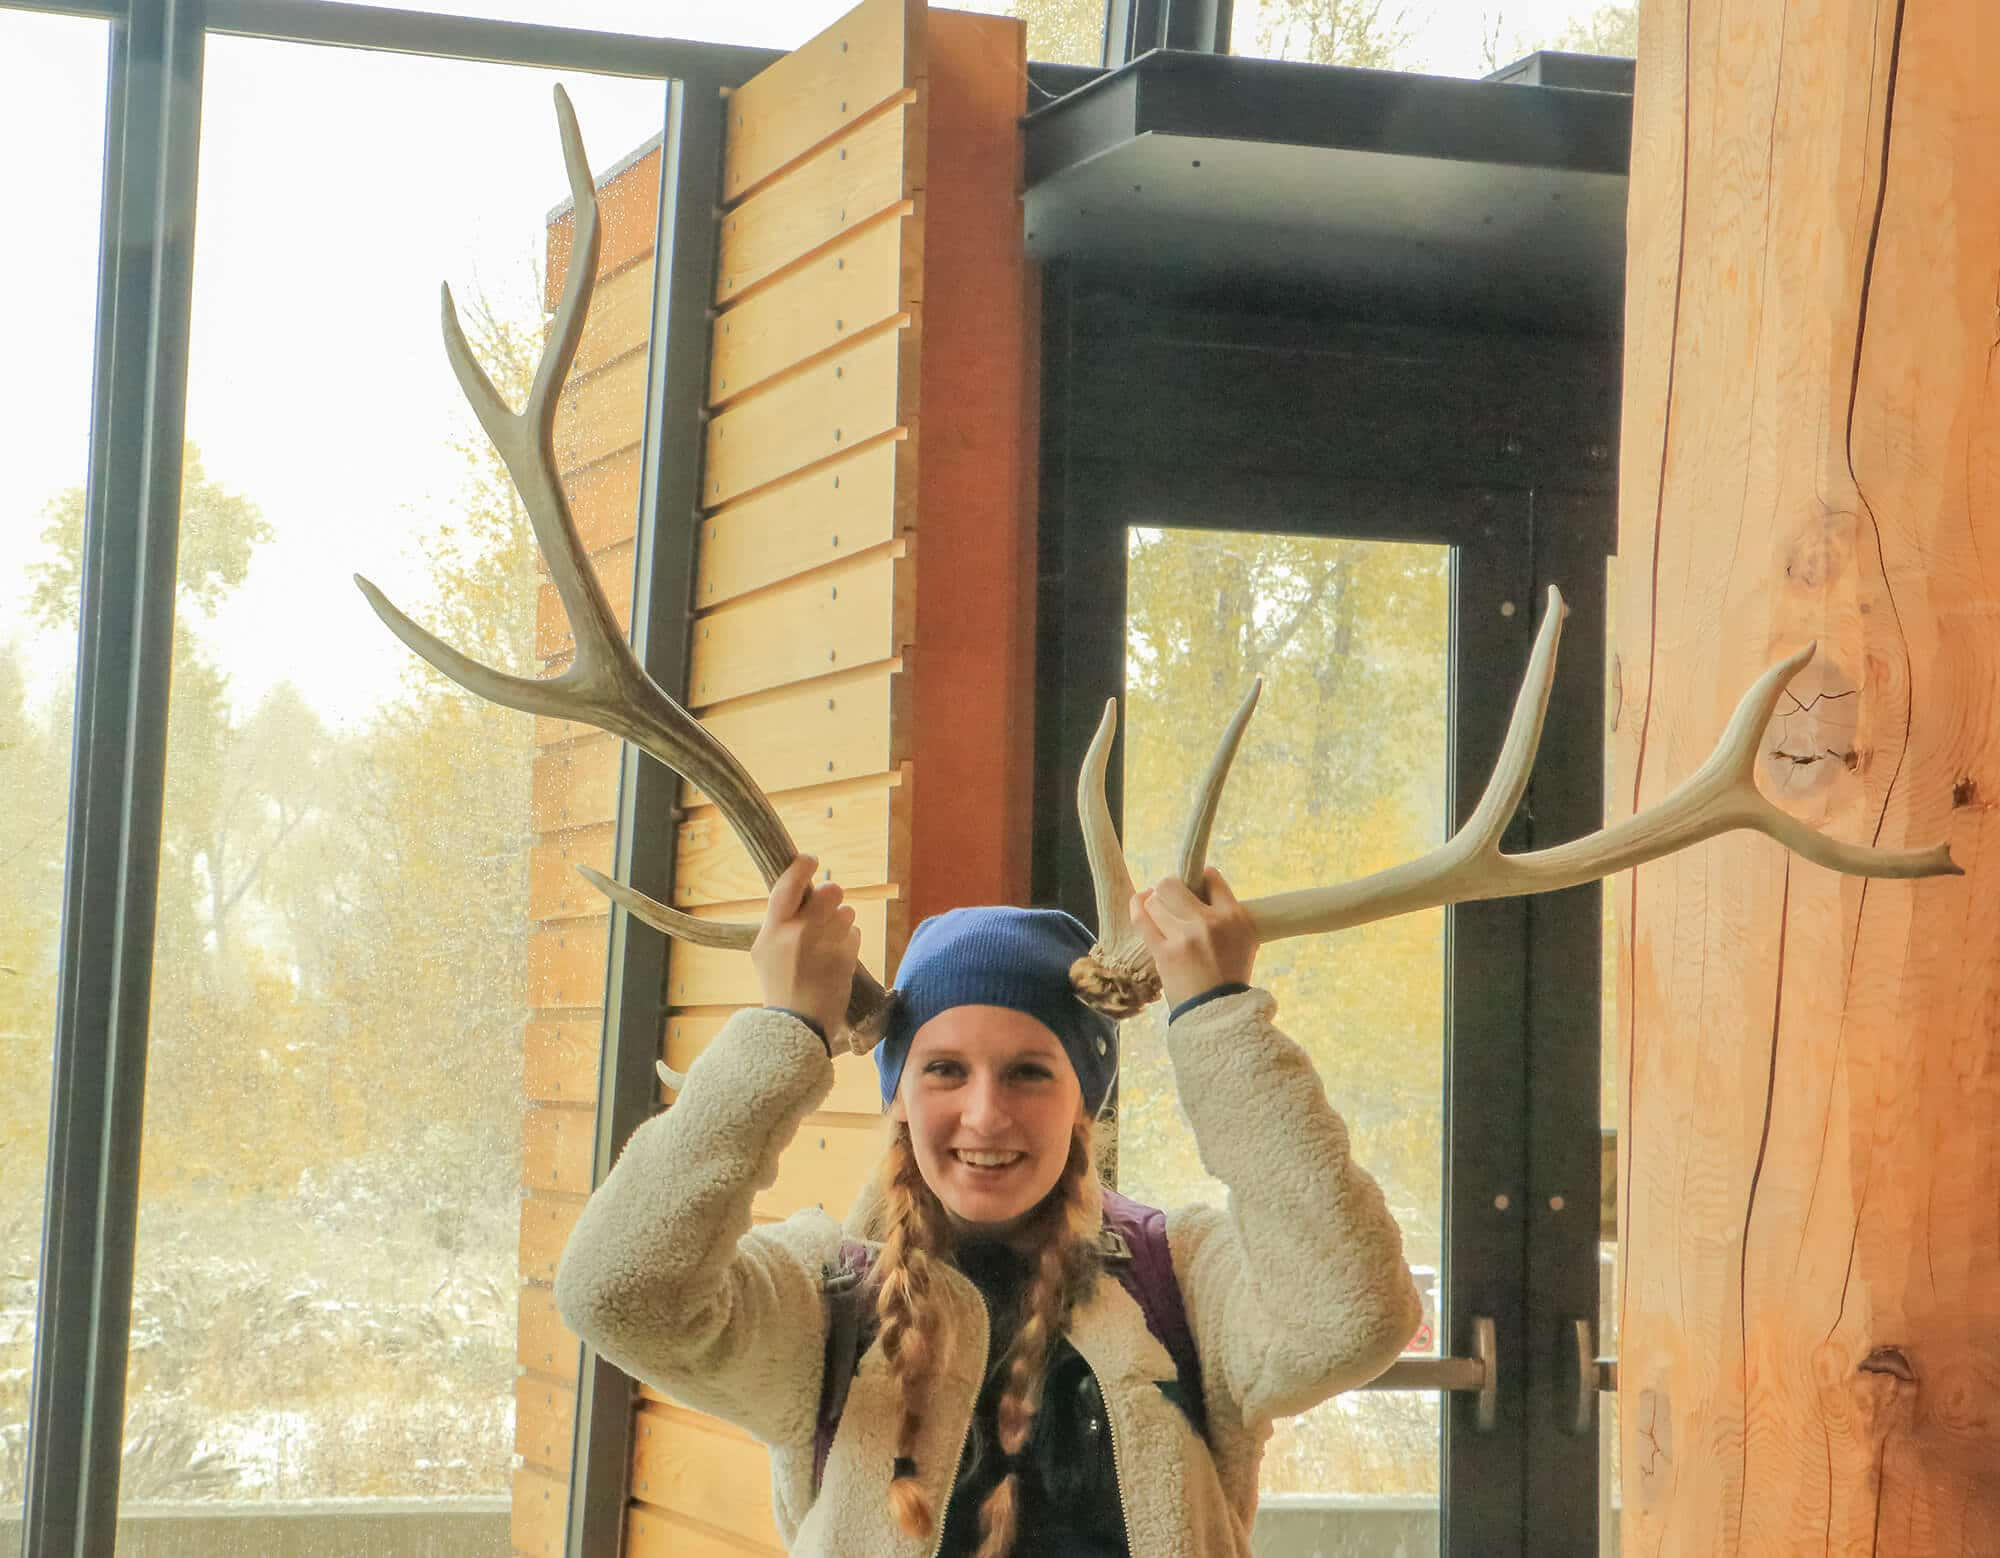 Student goofing off and holding antler and horn to her head